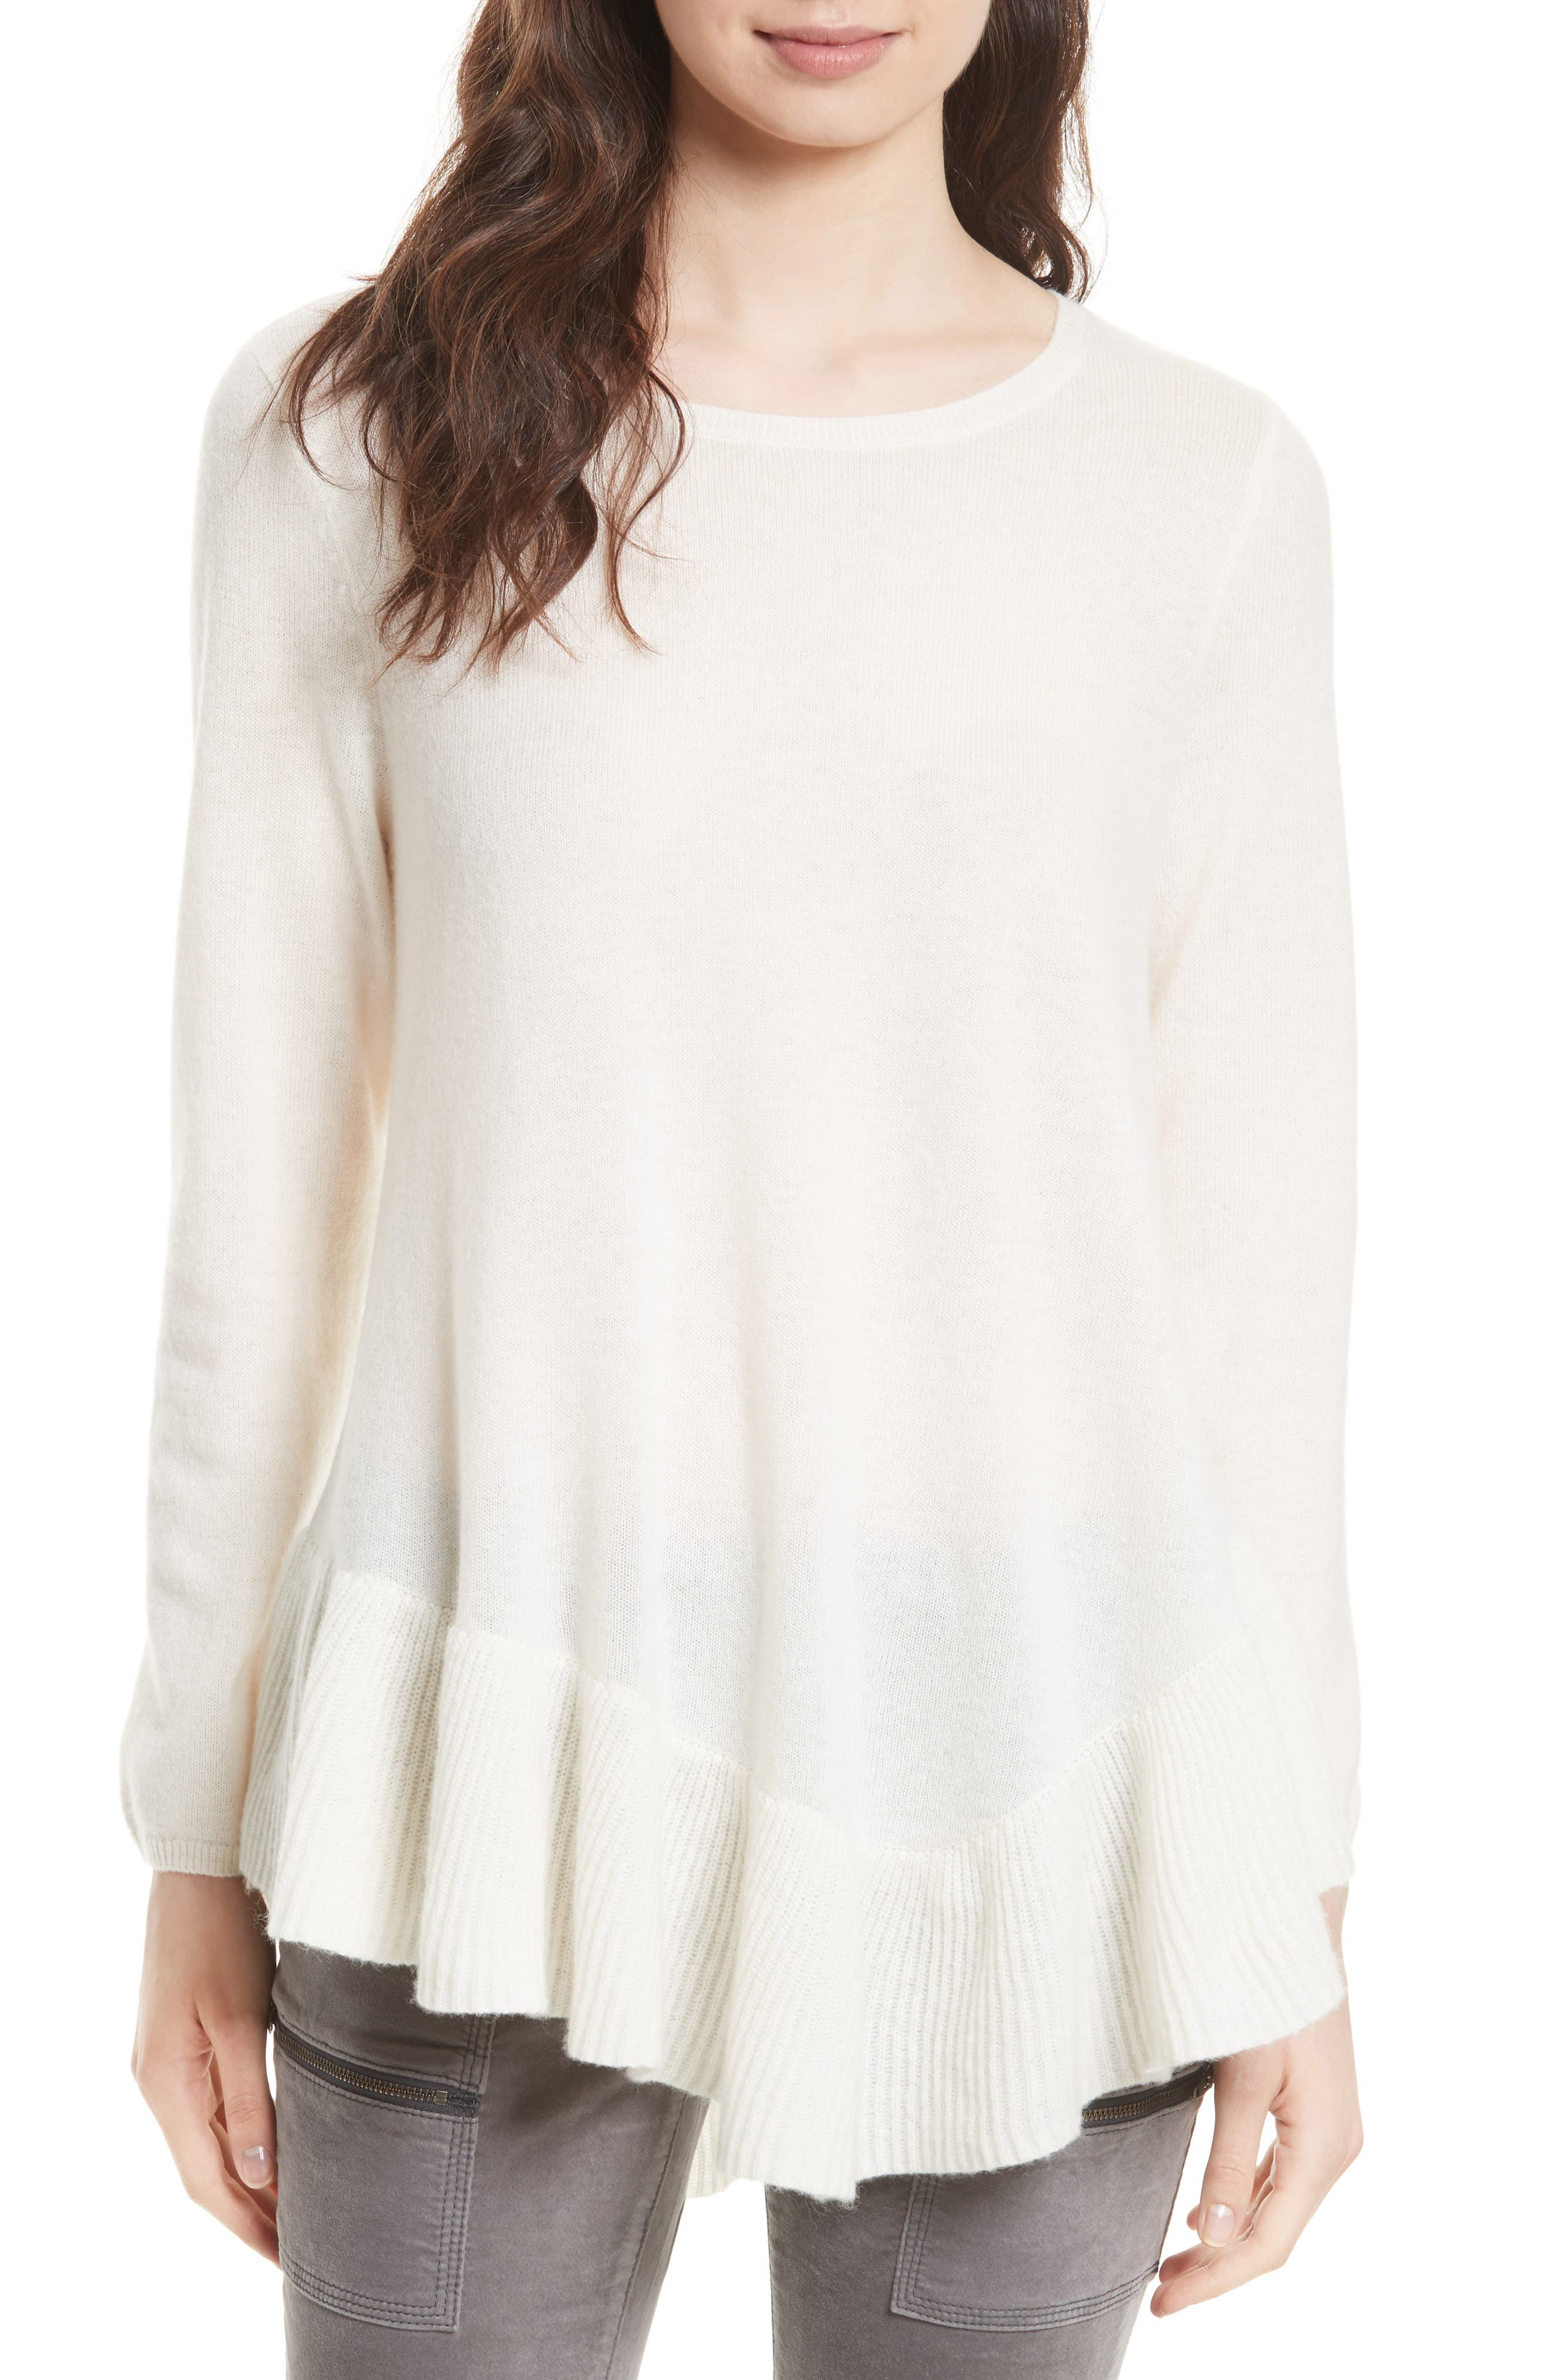 Joie Tambrel N Wool & Cashmere Asymmetrical Sweater Tunic